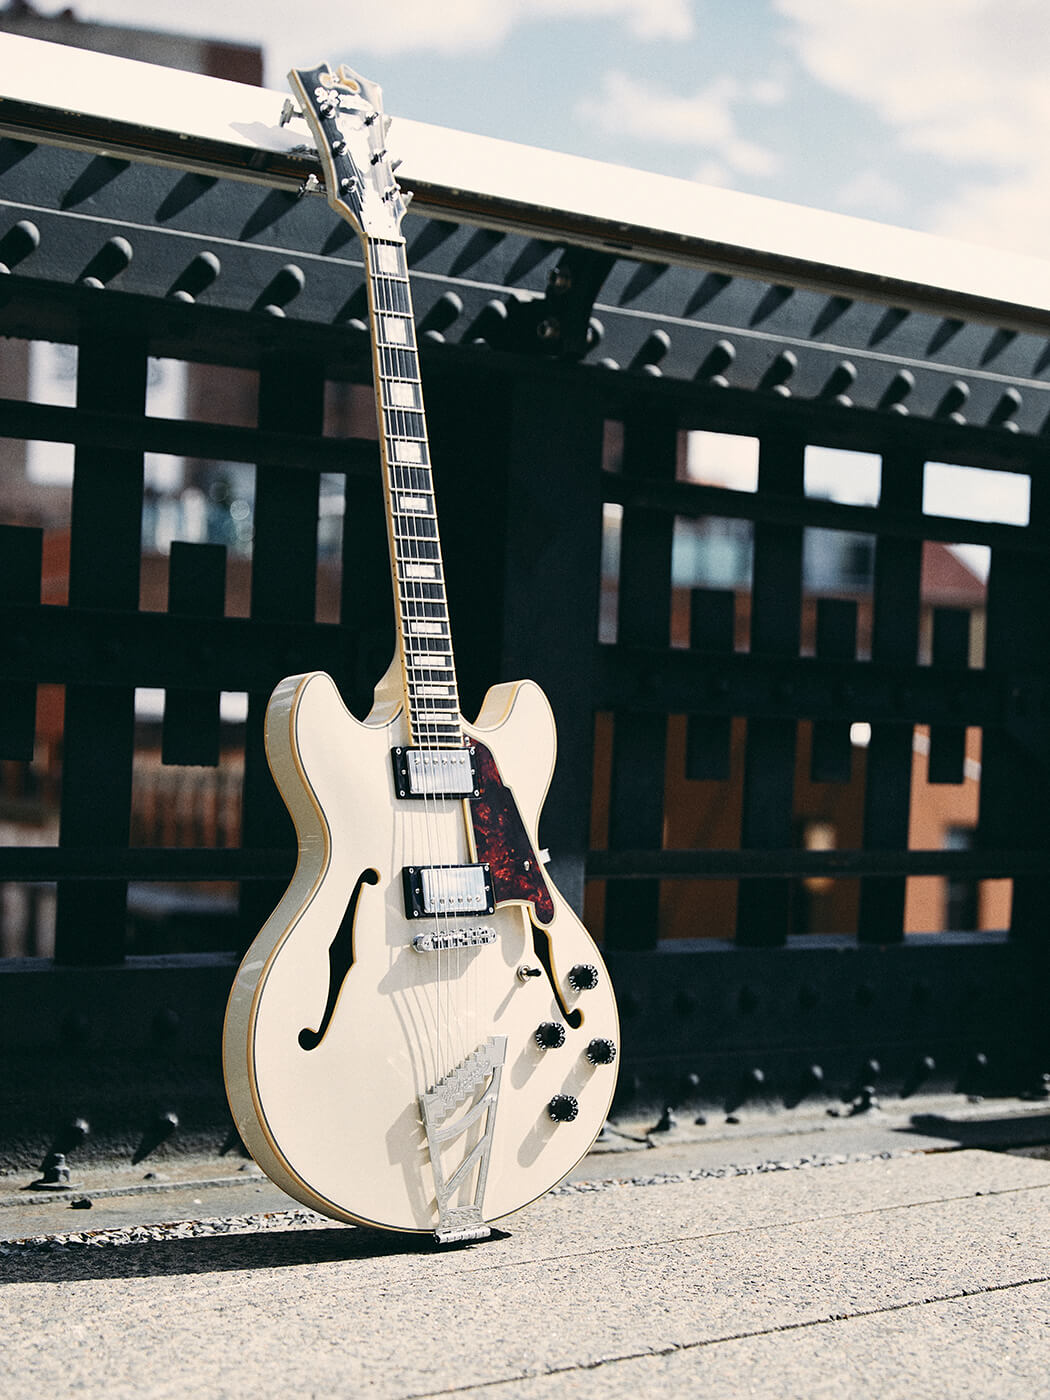 The rebirth of D'Angelico – how an archtop icon evolved